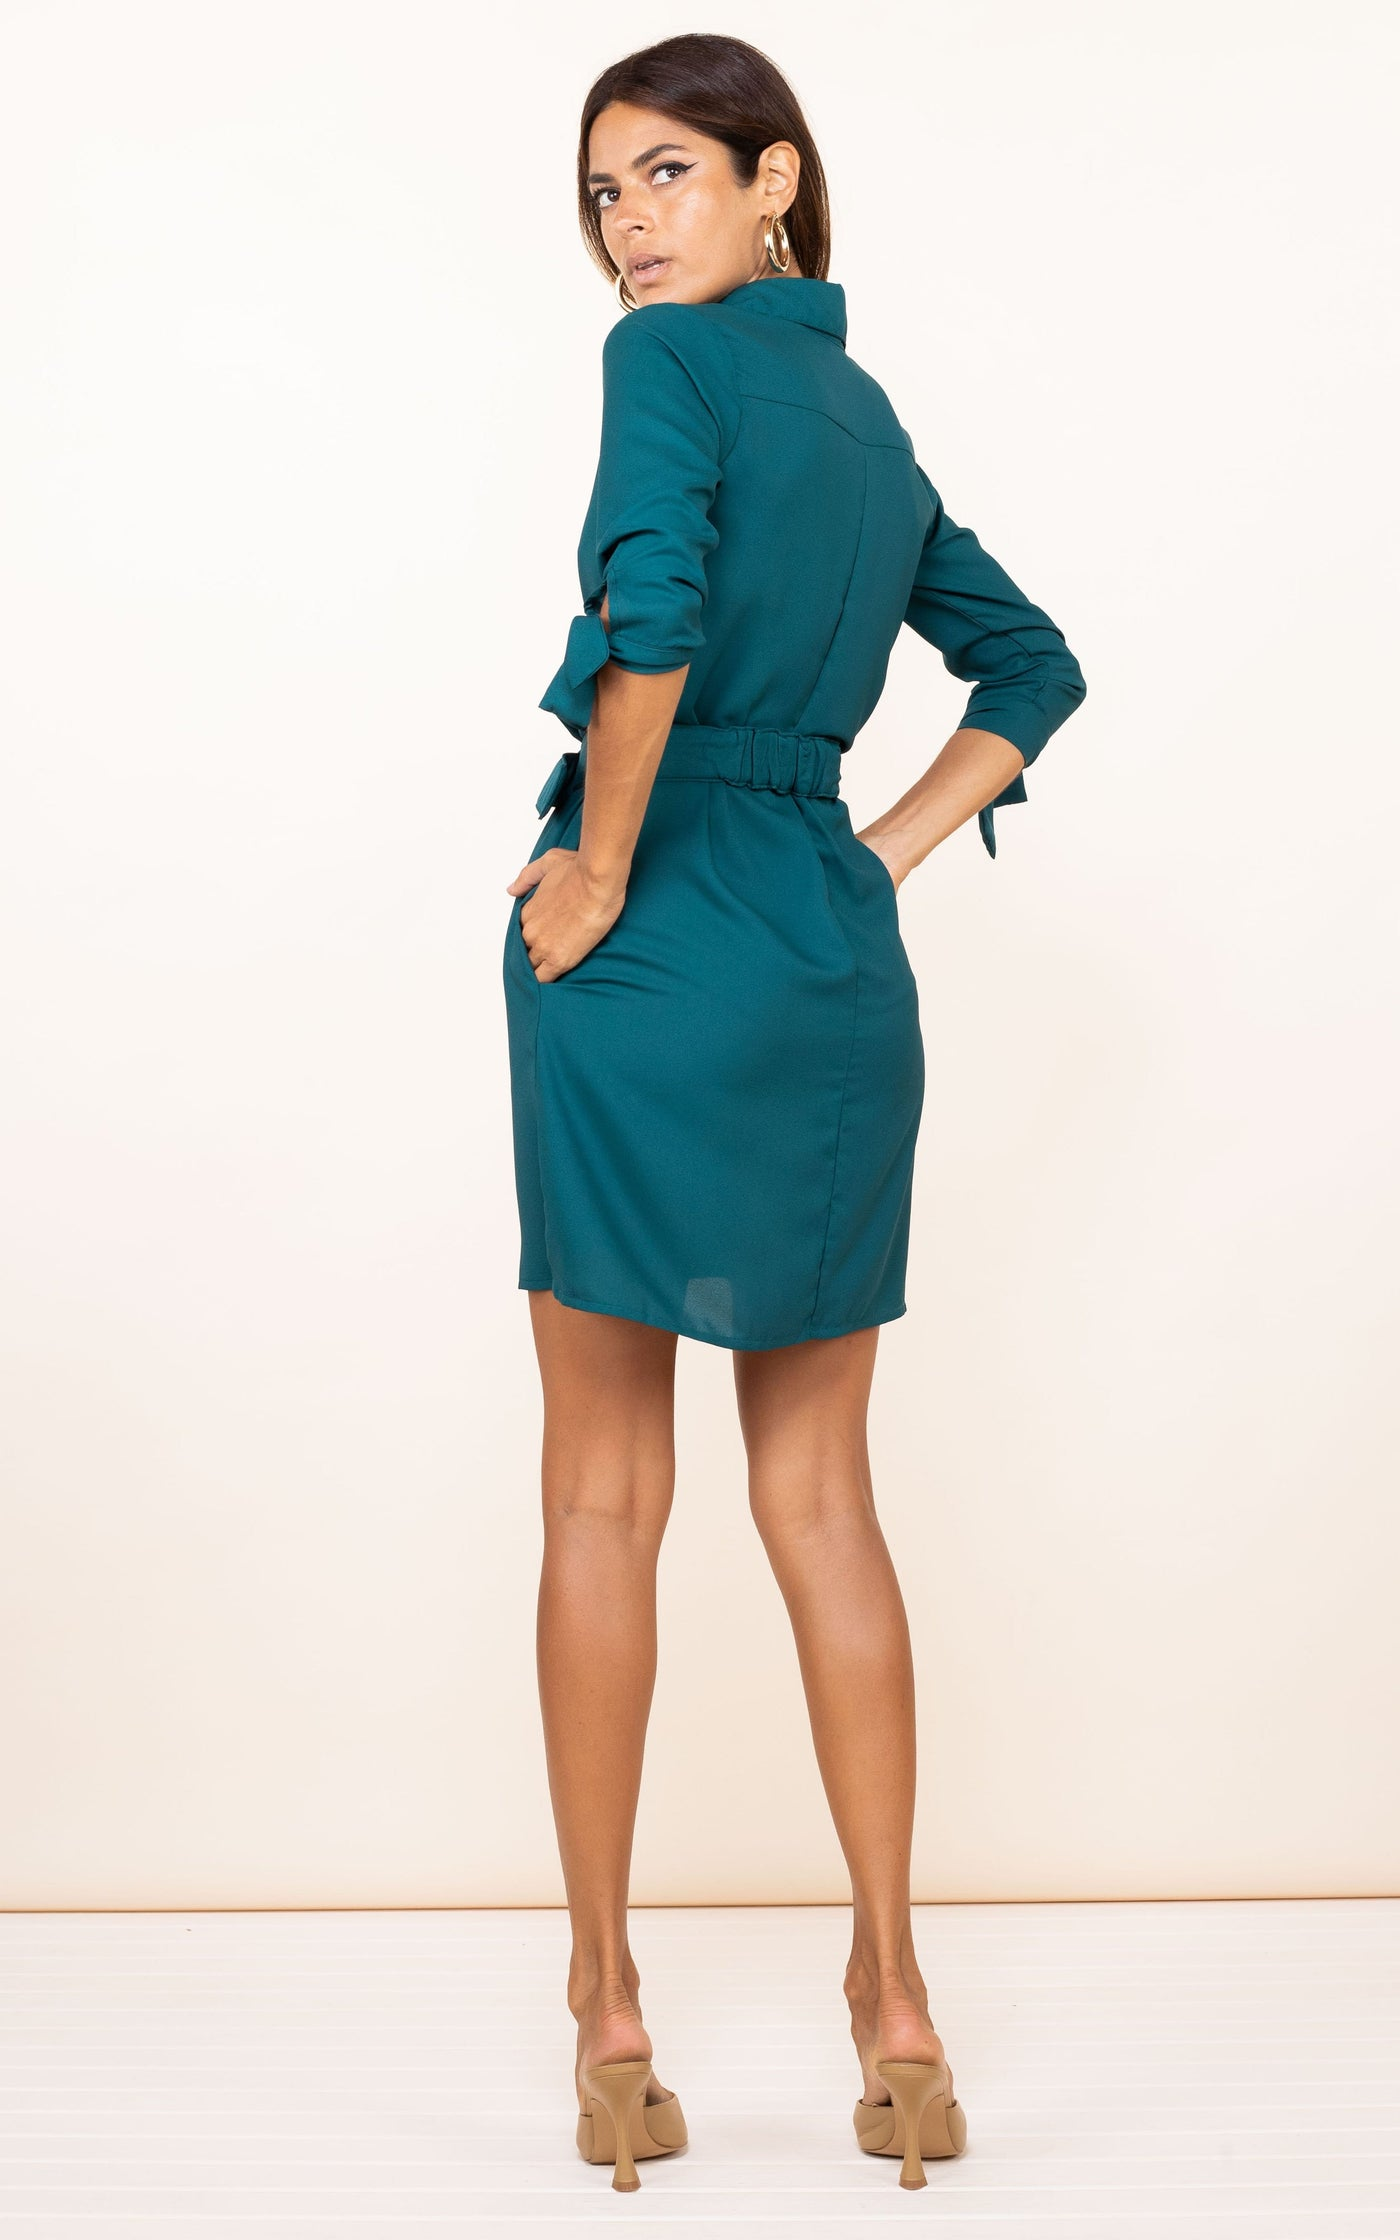 Dancing Leopard model faces backwards with hands in pockets wearing Jonah Dress in pine green